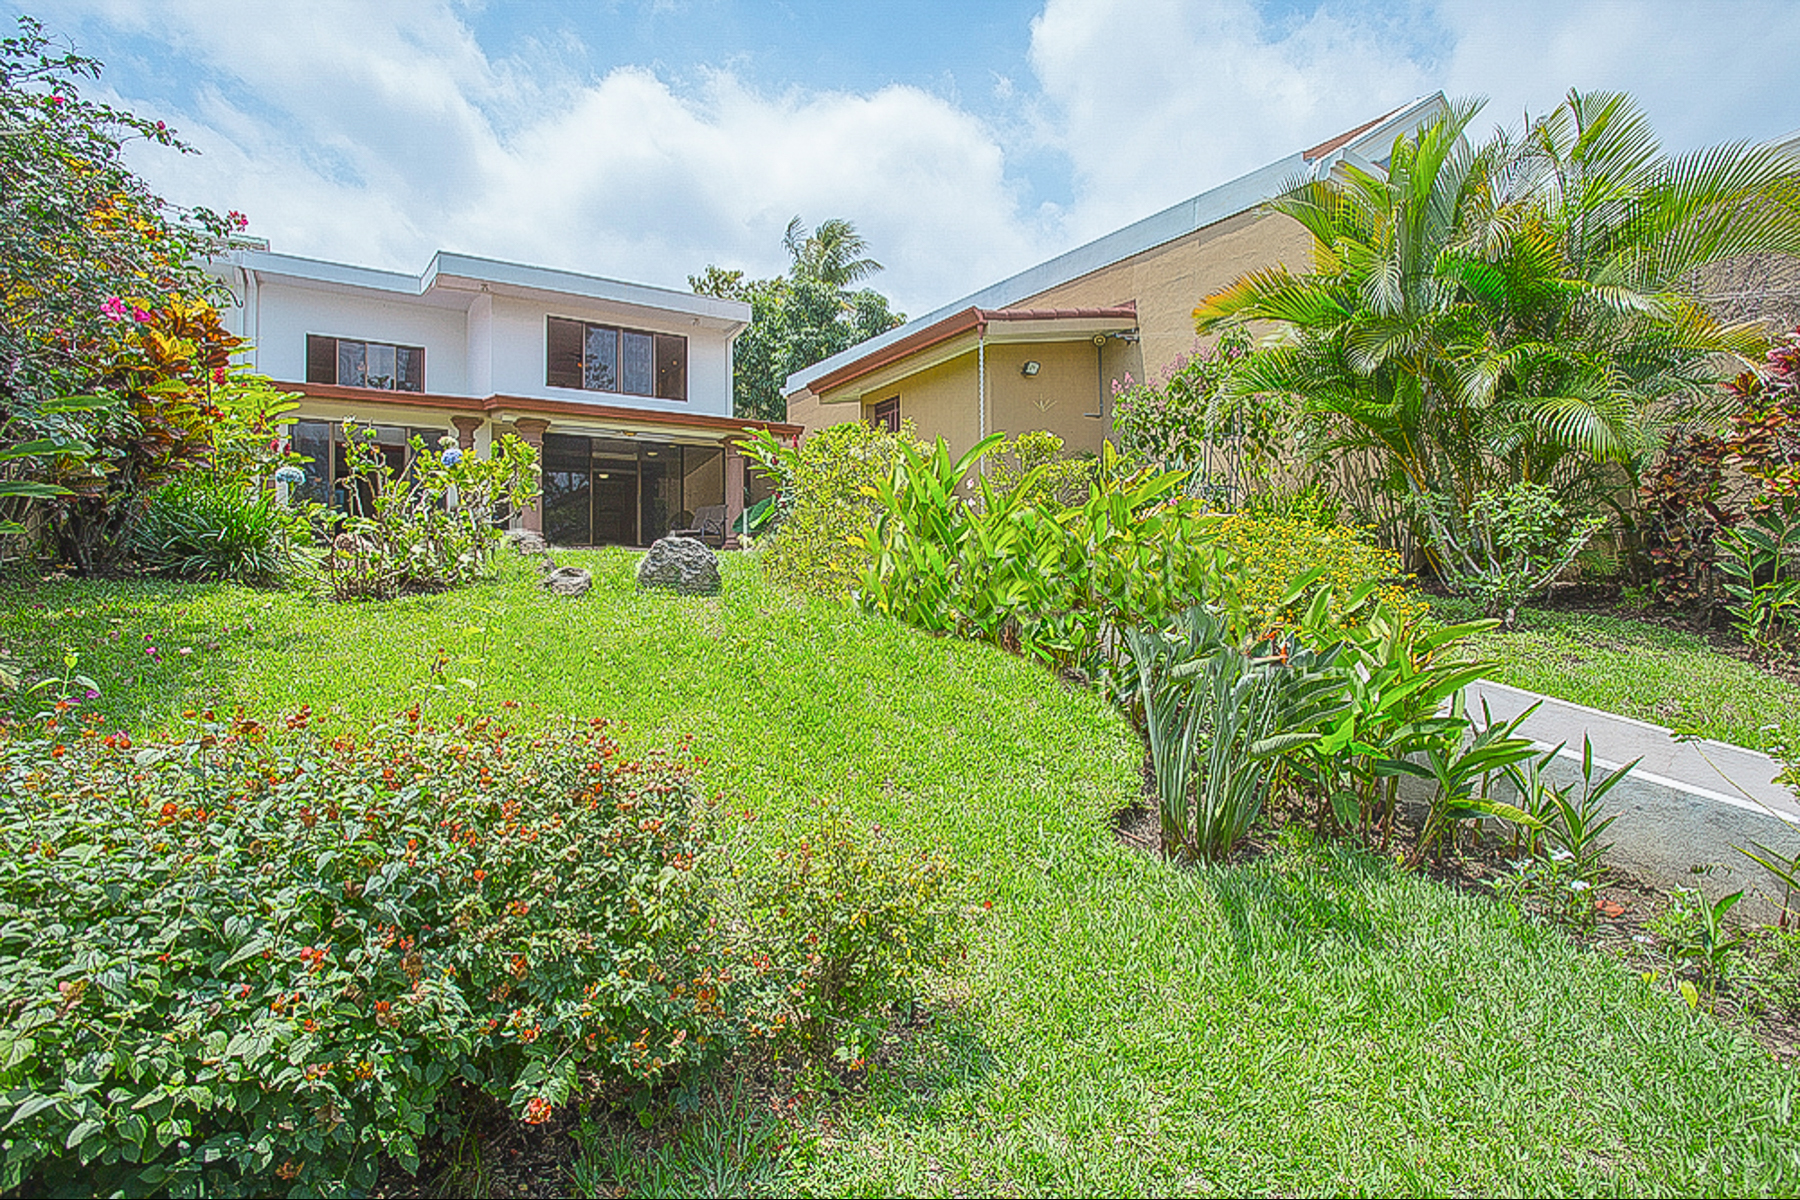 Single Family Homes for Sale at Golf Lovers Views Belen, Heredia Costa Rica